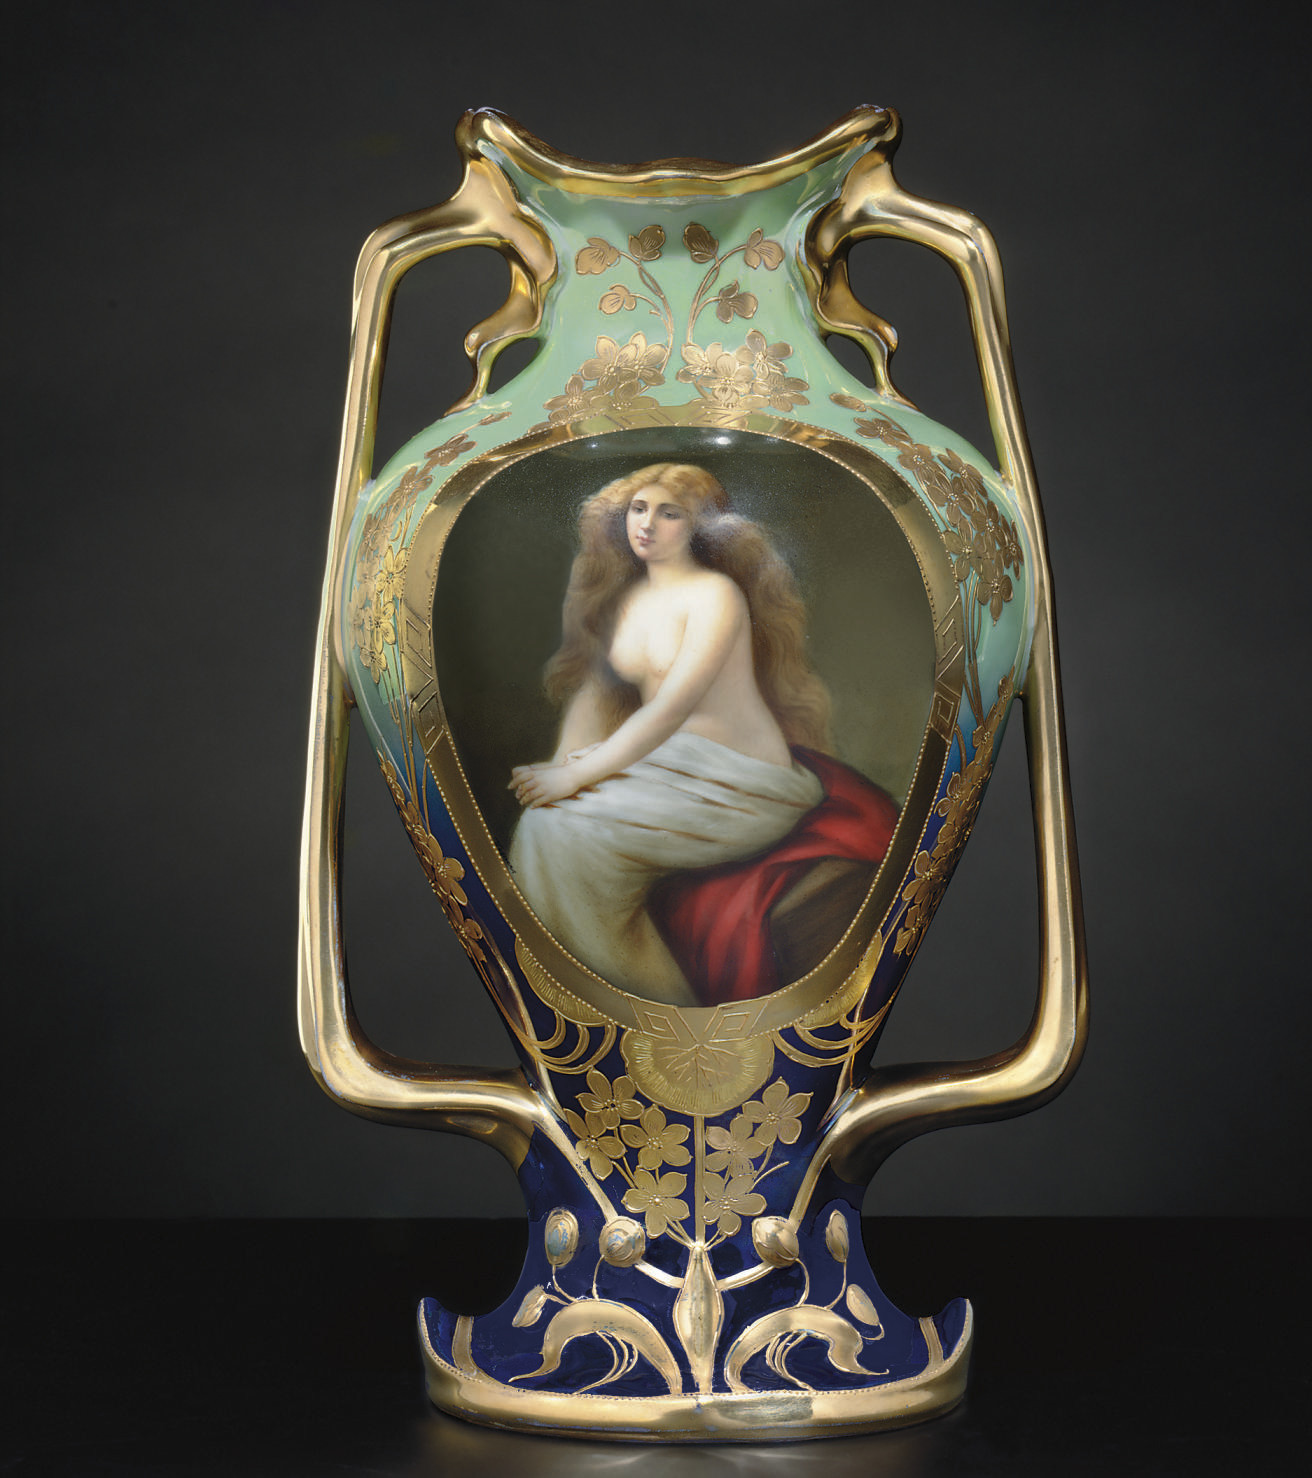 A VIENNA STYLE IRIDESCENT CELADON AND COBALT-BLUE GROUND PORTRAIT VASE, 'SOLITUDE'